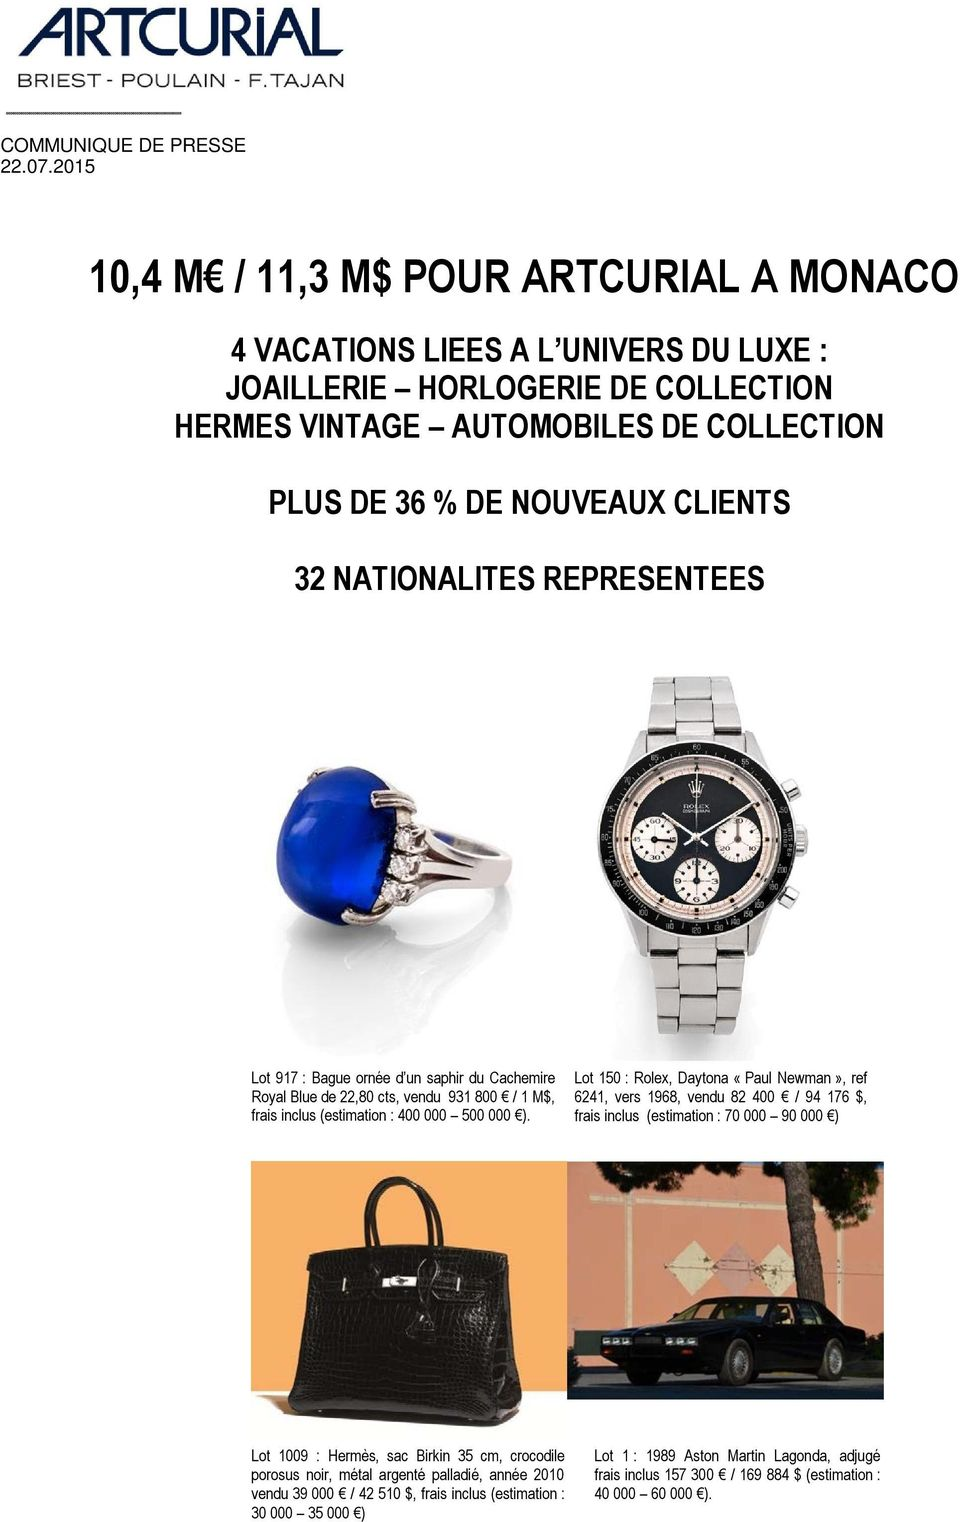 32 NATIONALITES REPRESENTEES Lot 917 : Bague ornée d un saphir du Cachemire Royal Blue de 22,80 cts, vendu 931 800 / 1 M$, frais inclus (estimation : 400 000 500 000 ).